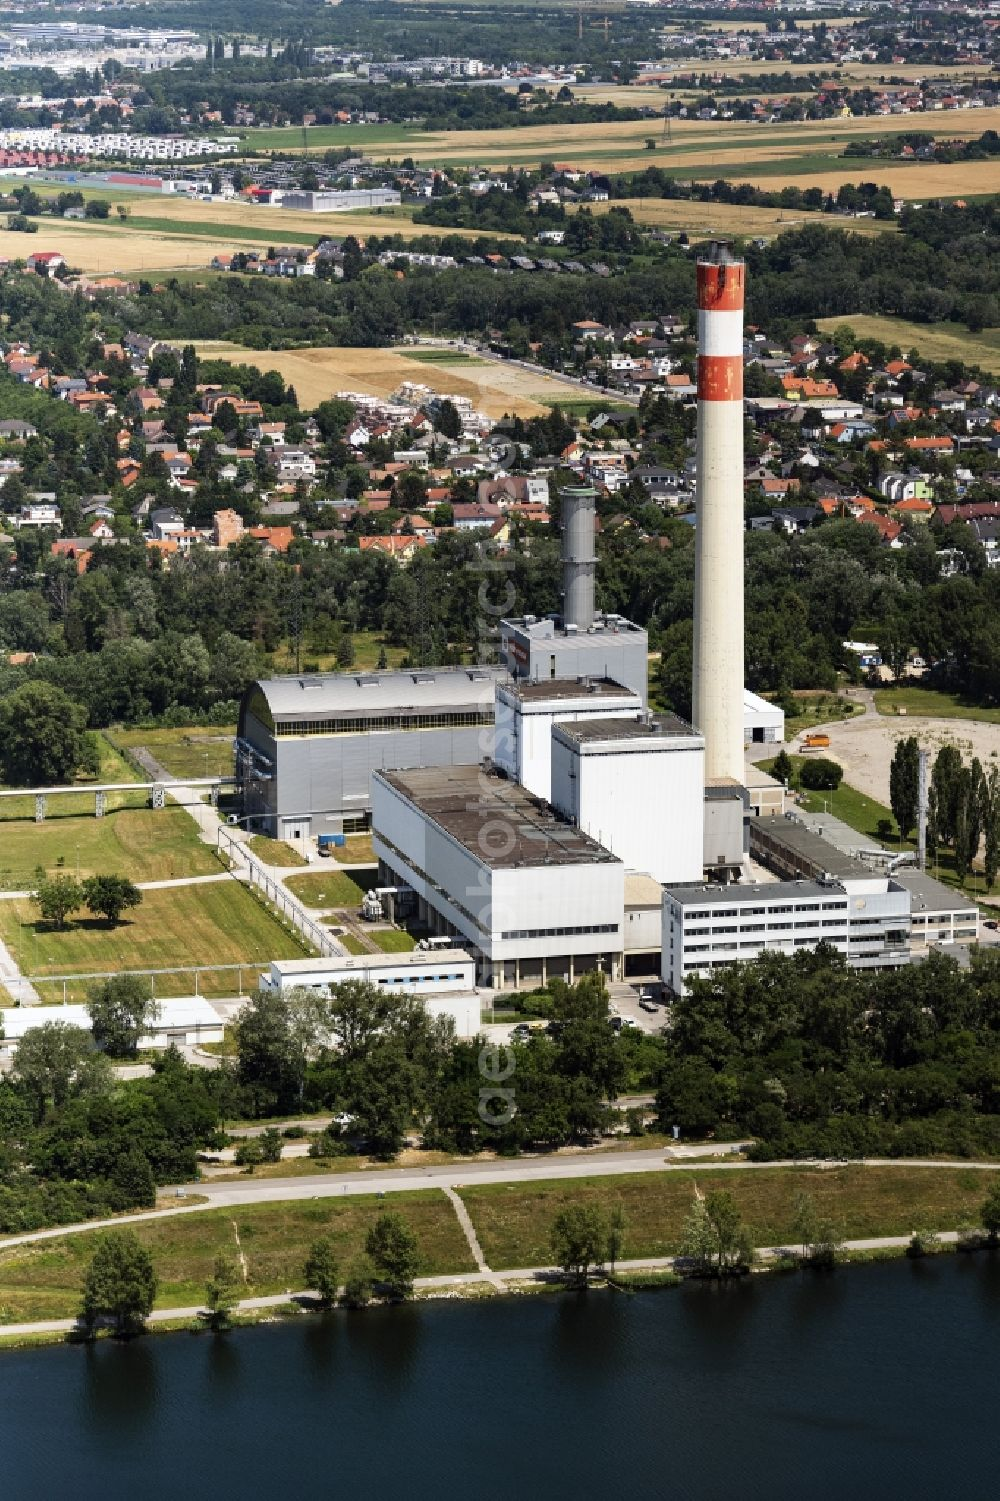 Wien from above - Power plants and exhaust towers of thermal power station KWK-Kraftwek Donaustadt in Vienna in Austria.